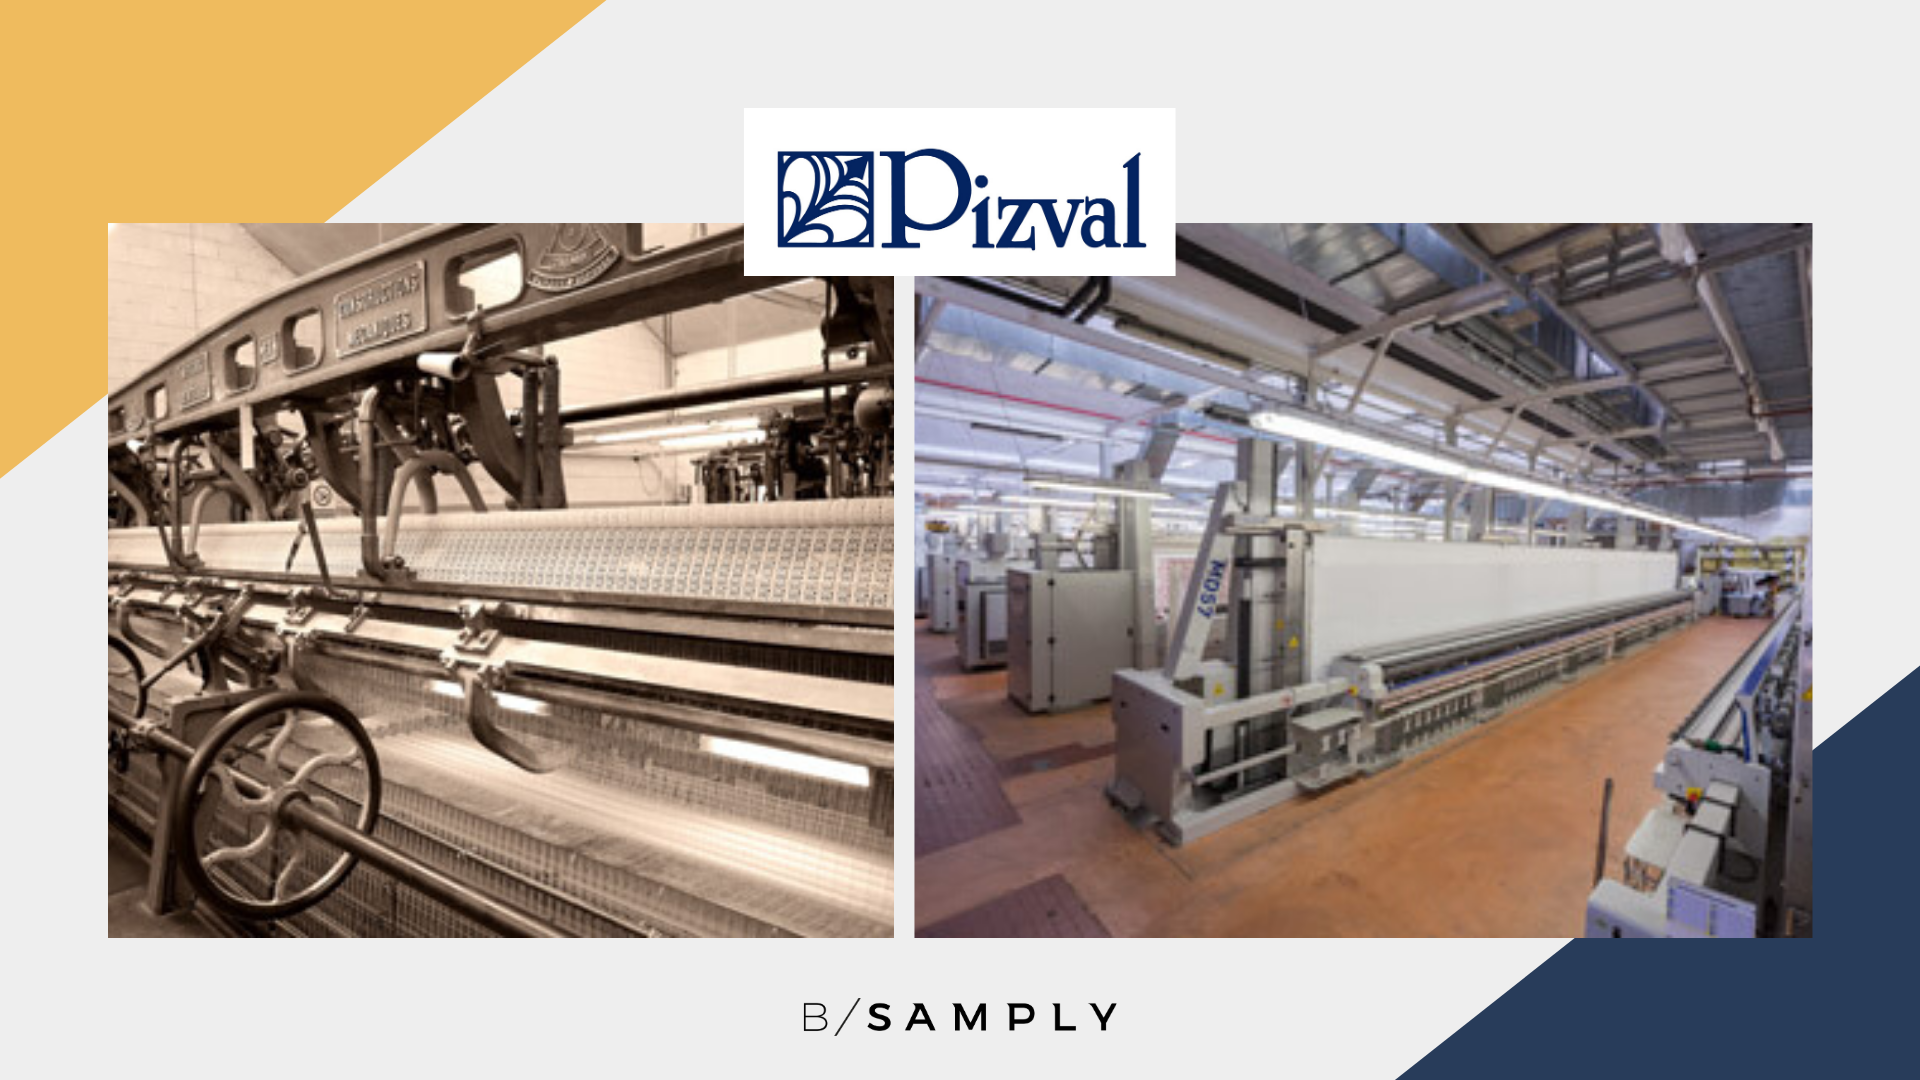 Pizval Articles cover BSAMPLY